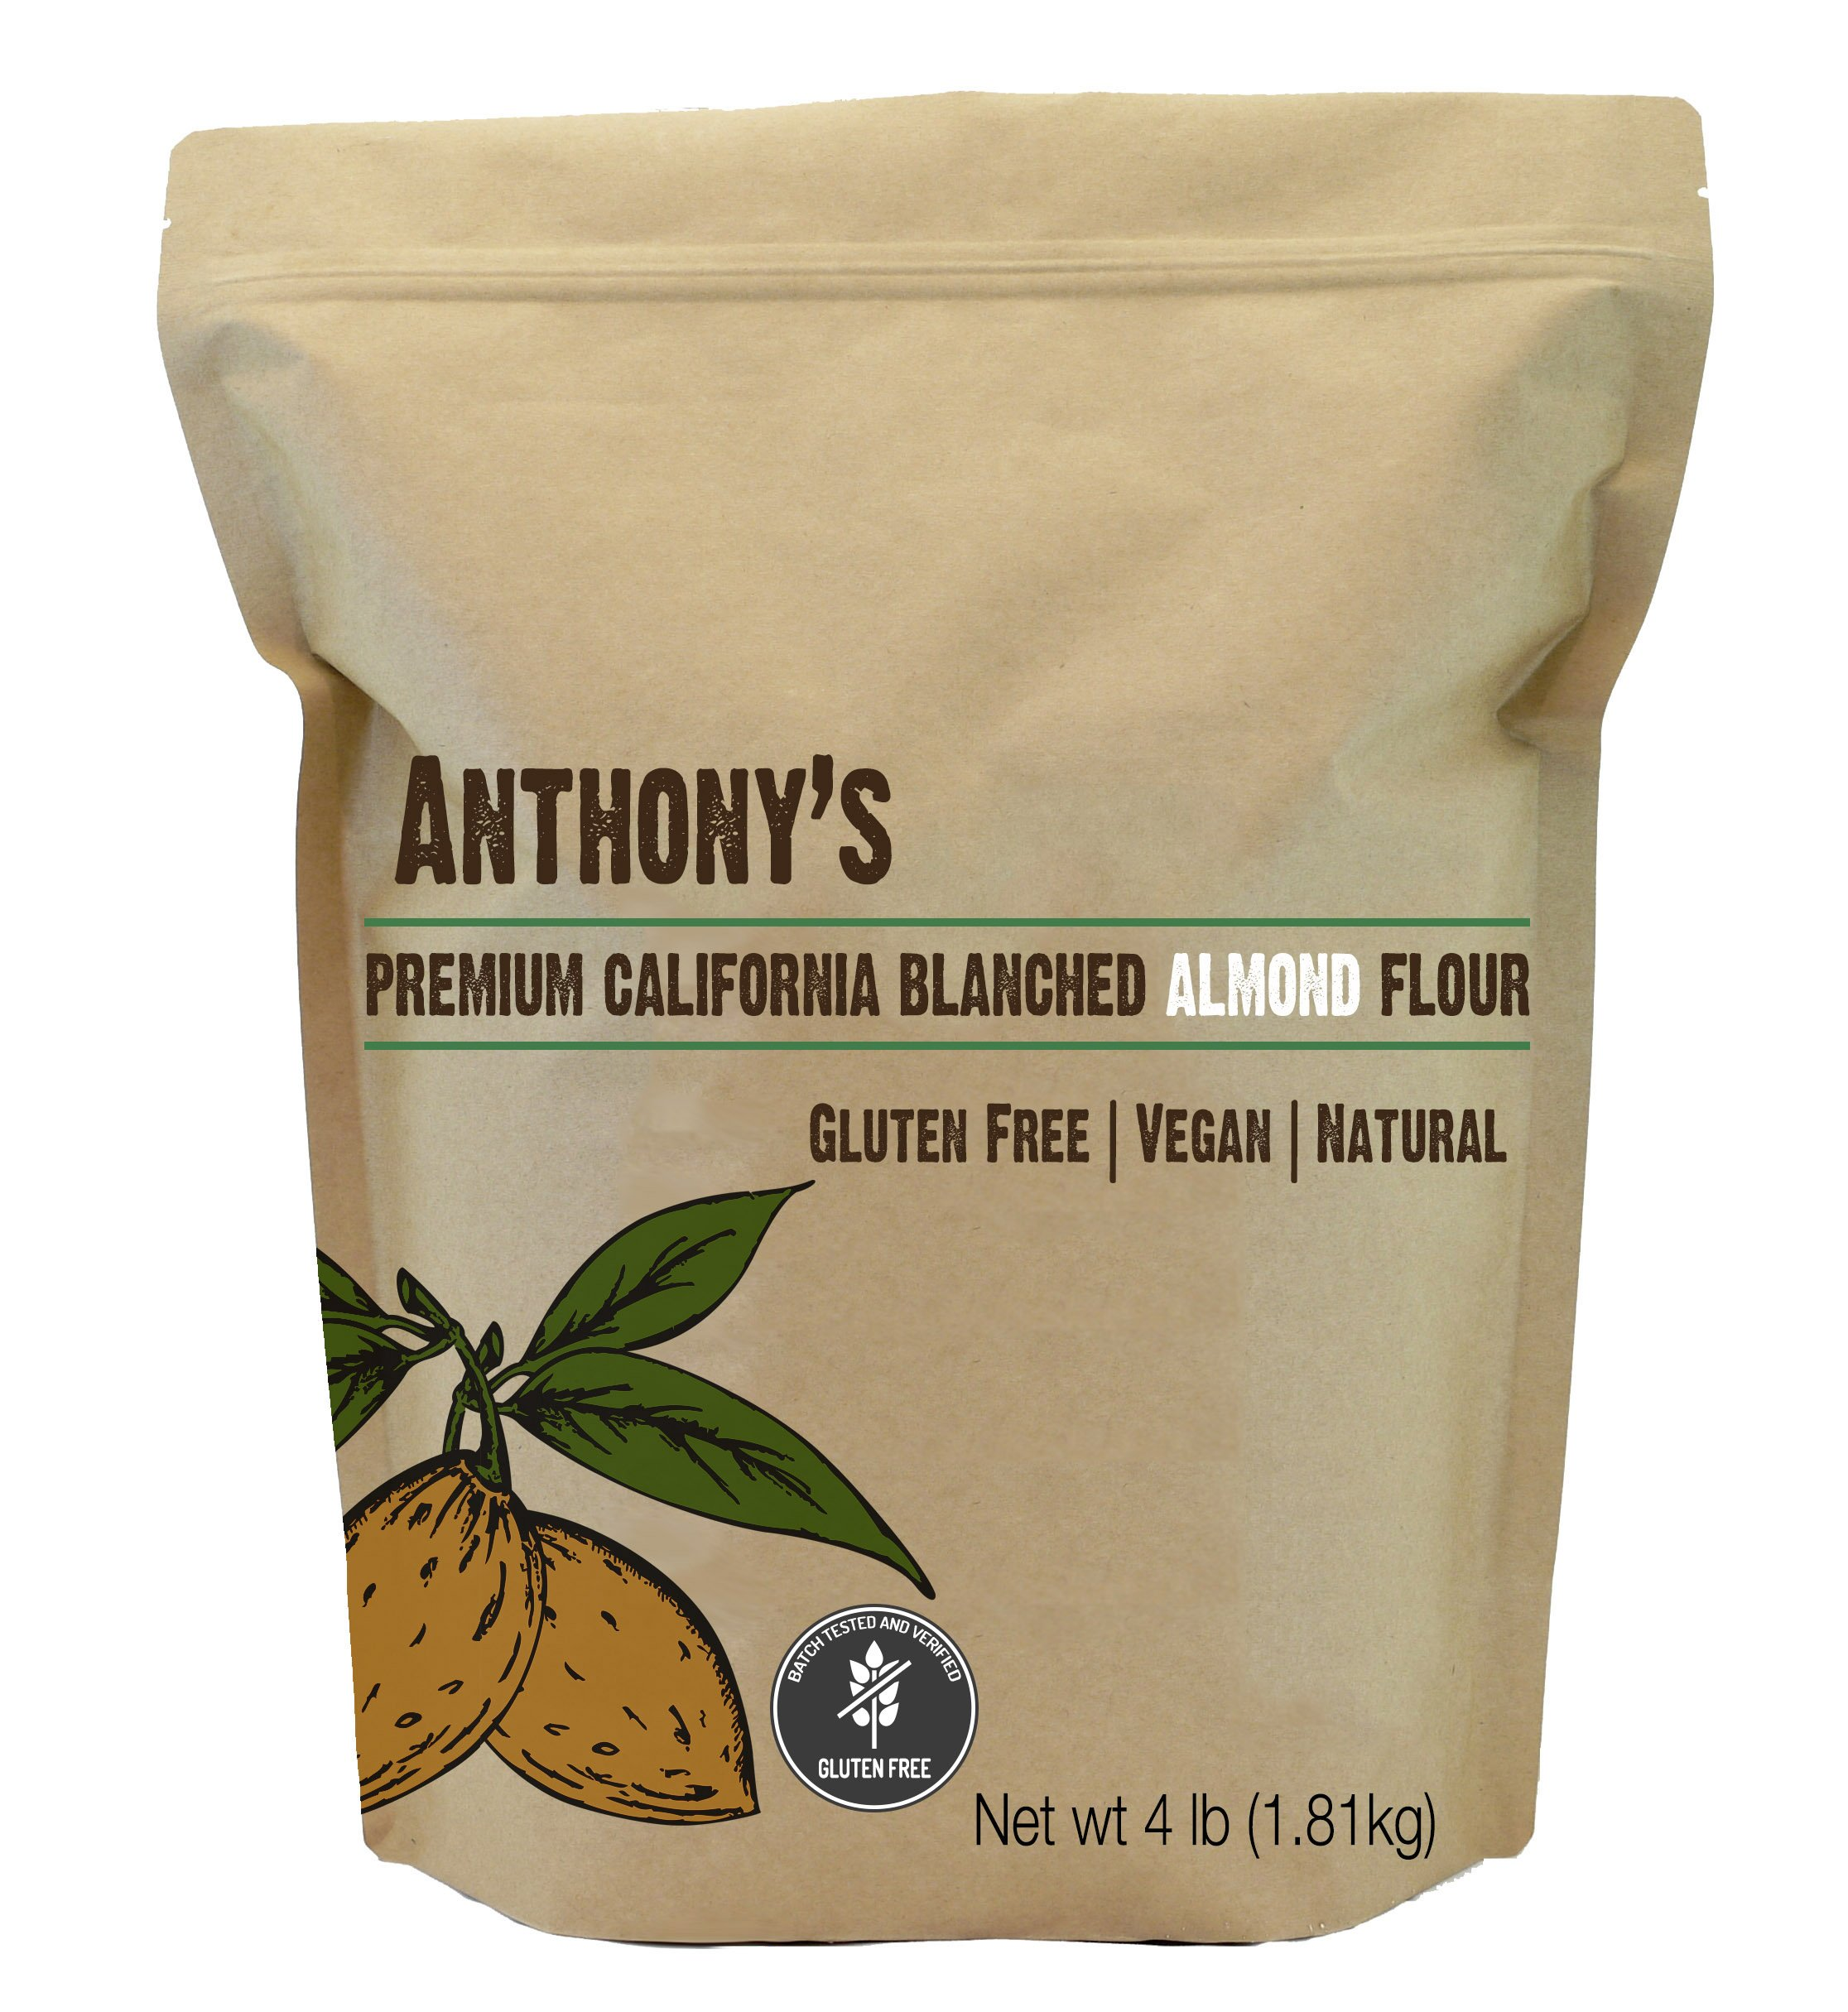 Almond Flour Blanched, Anthony's 4lb Bag, Certified Gluten-Free